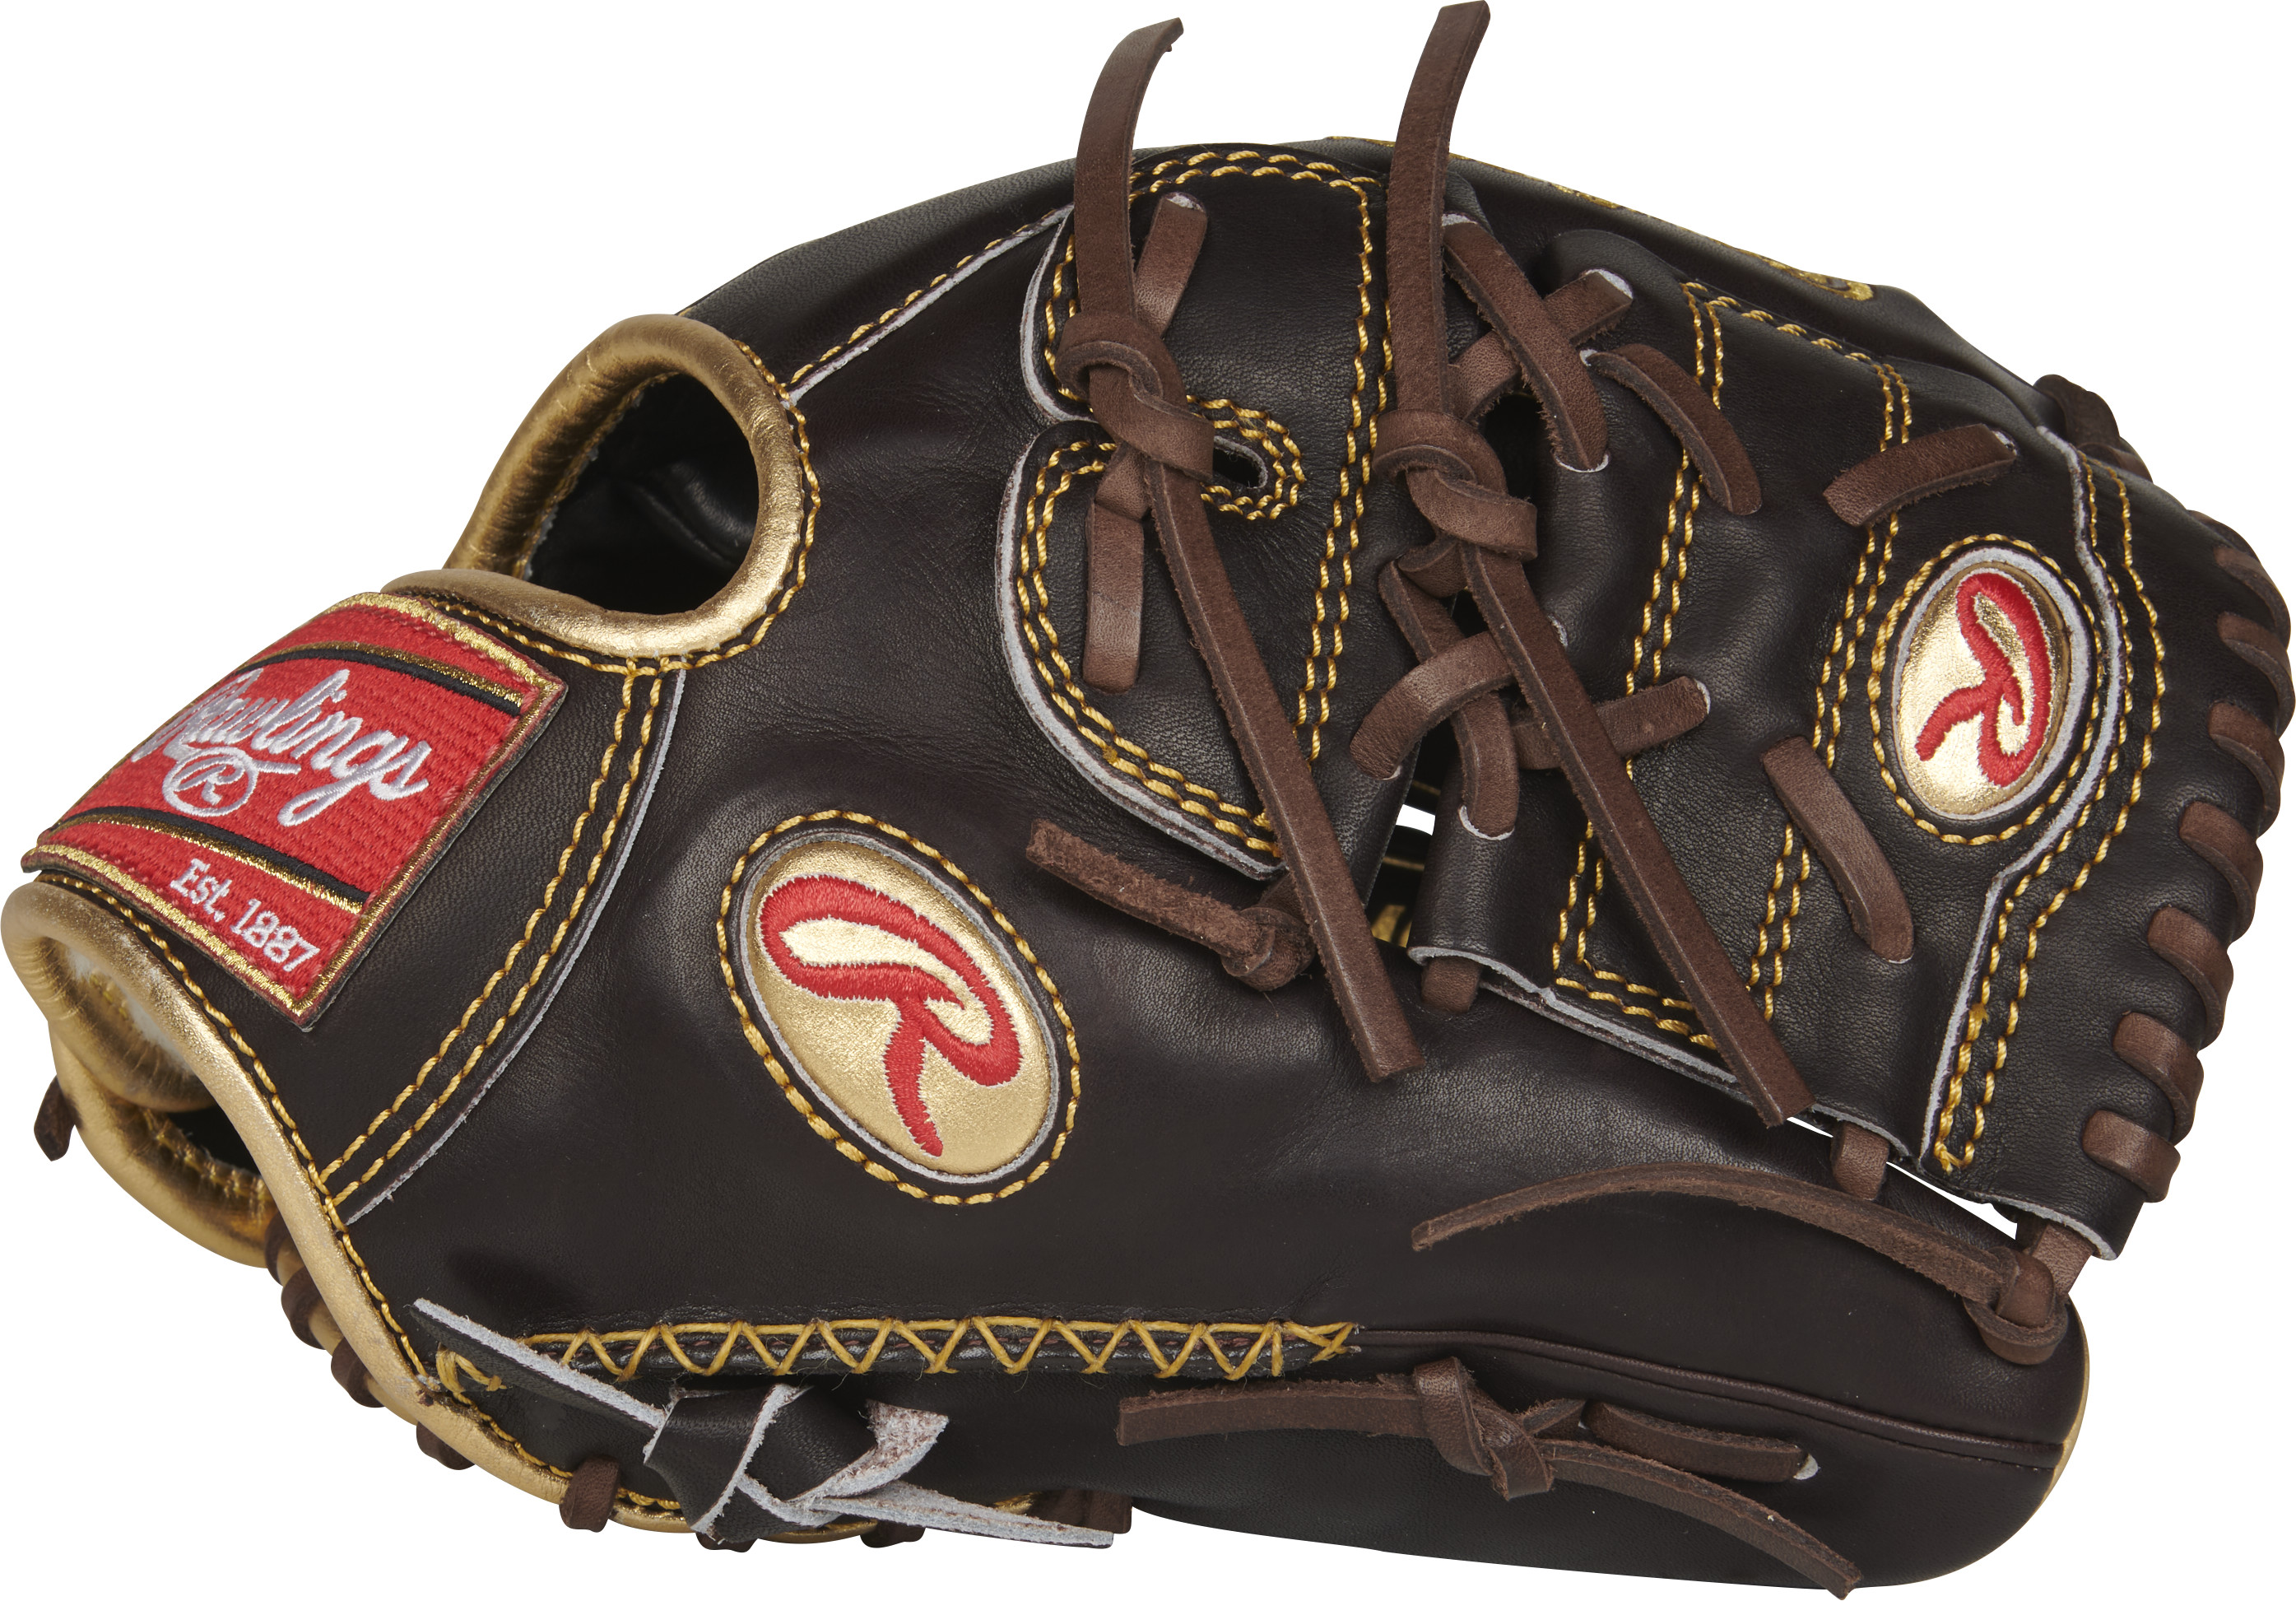 http://www.bestbatdeals.com/images/gloves/rawlings/RGG205-9MO-3.jpg